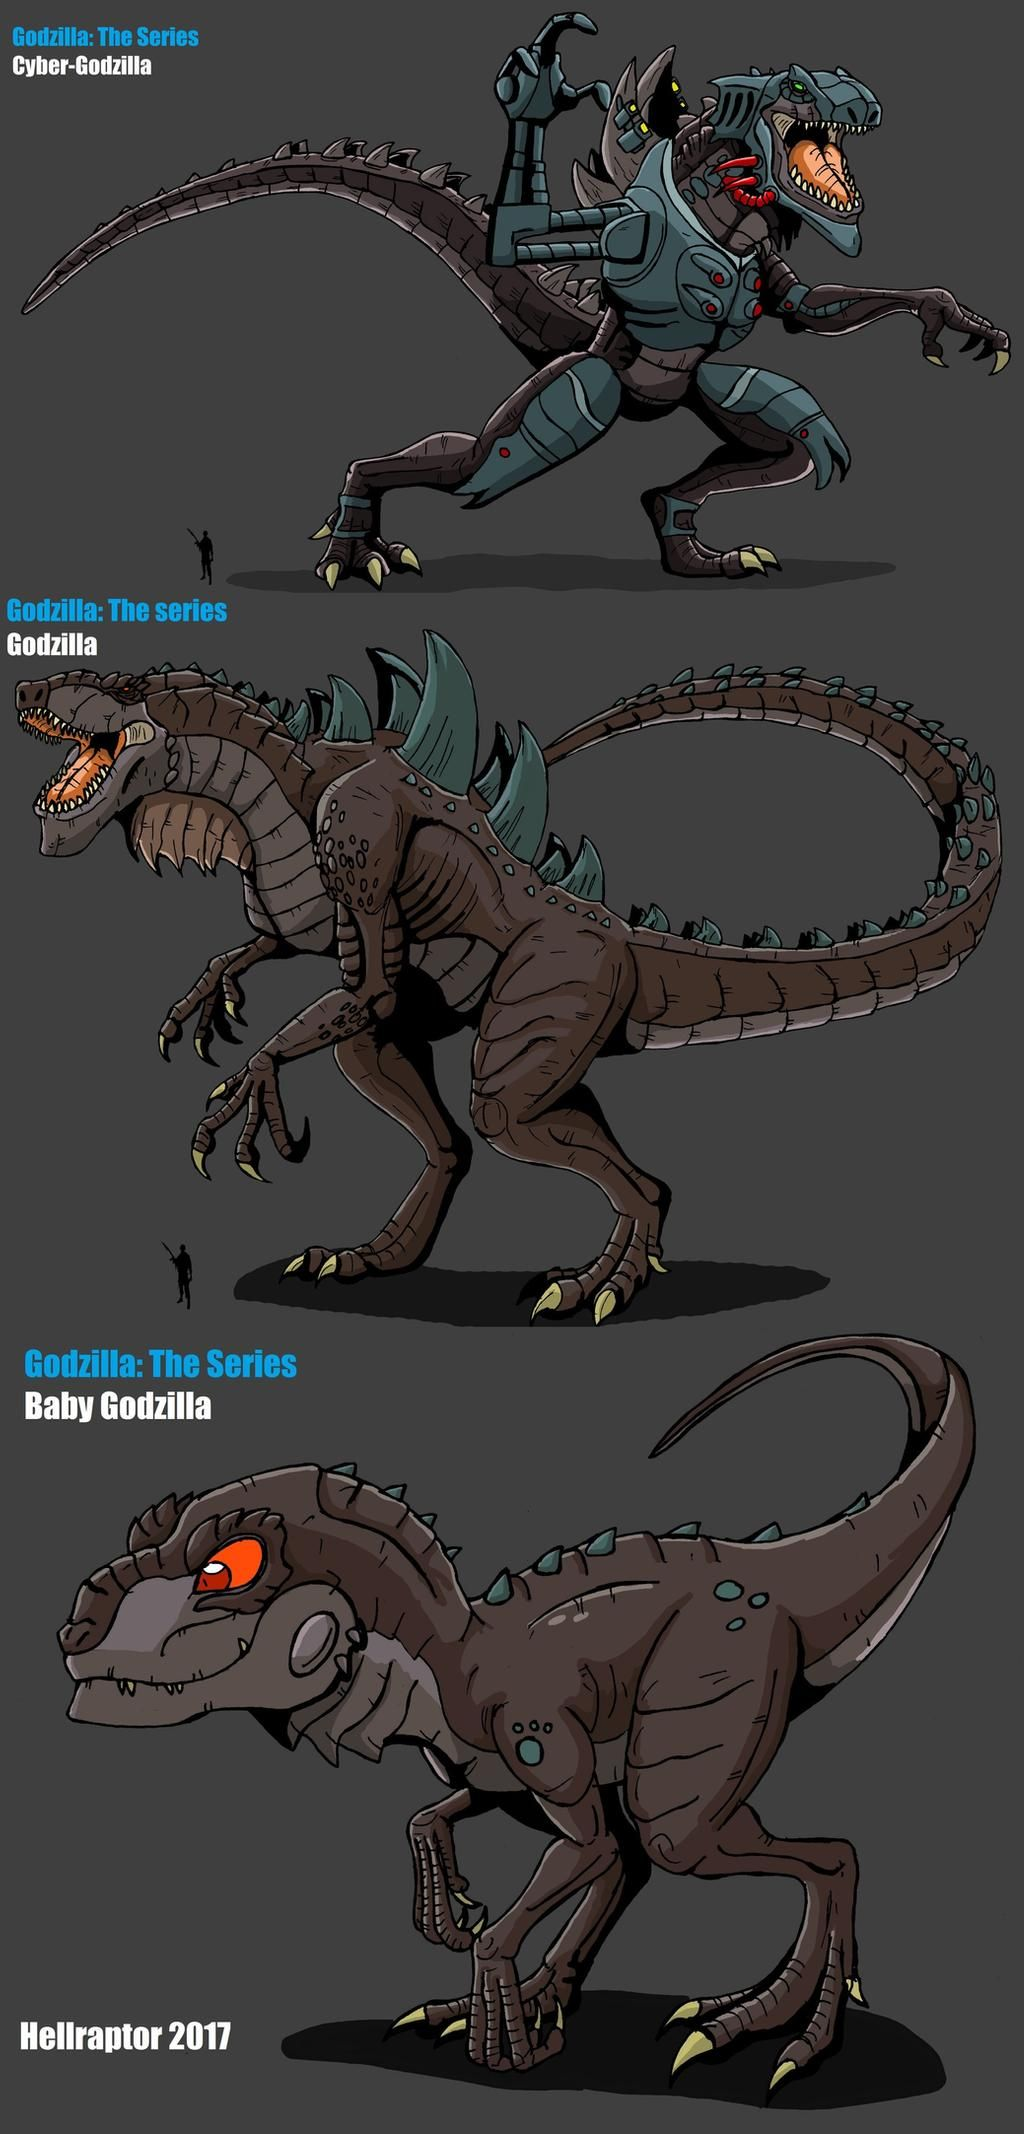 Godzilla 1998 Animated Series Trio by HellraptorStudios on